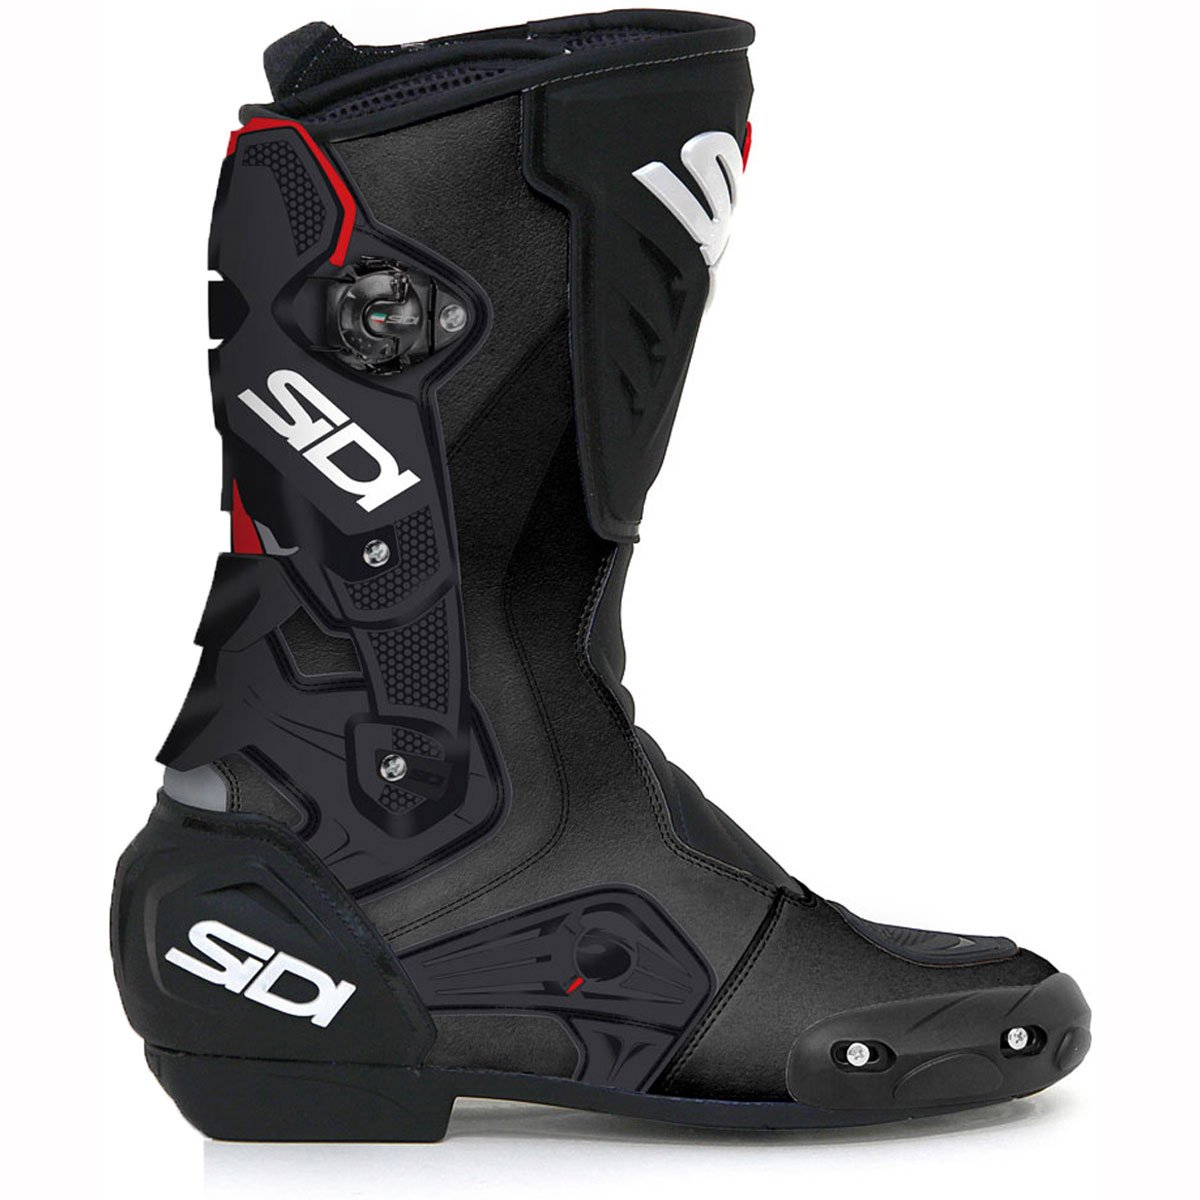 Top 10 Best Sportsbike & Racing Motorcycle Boot